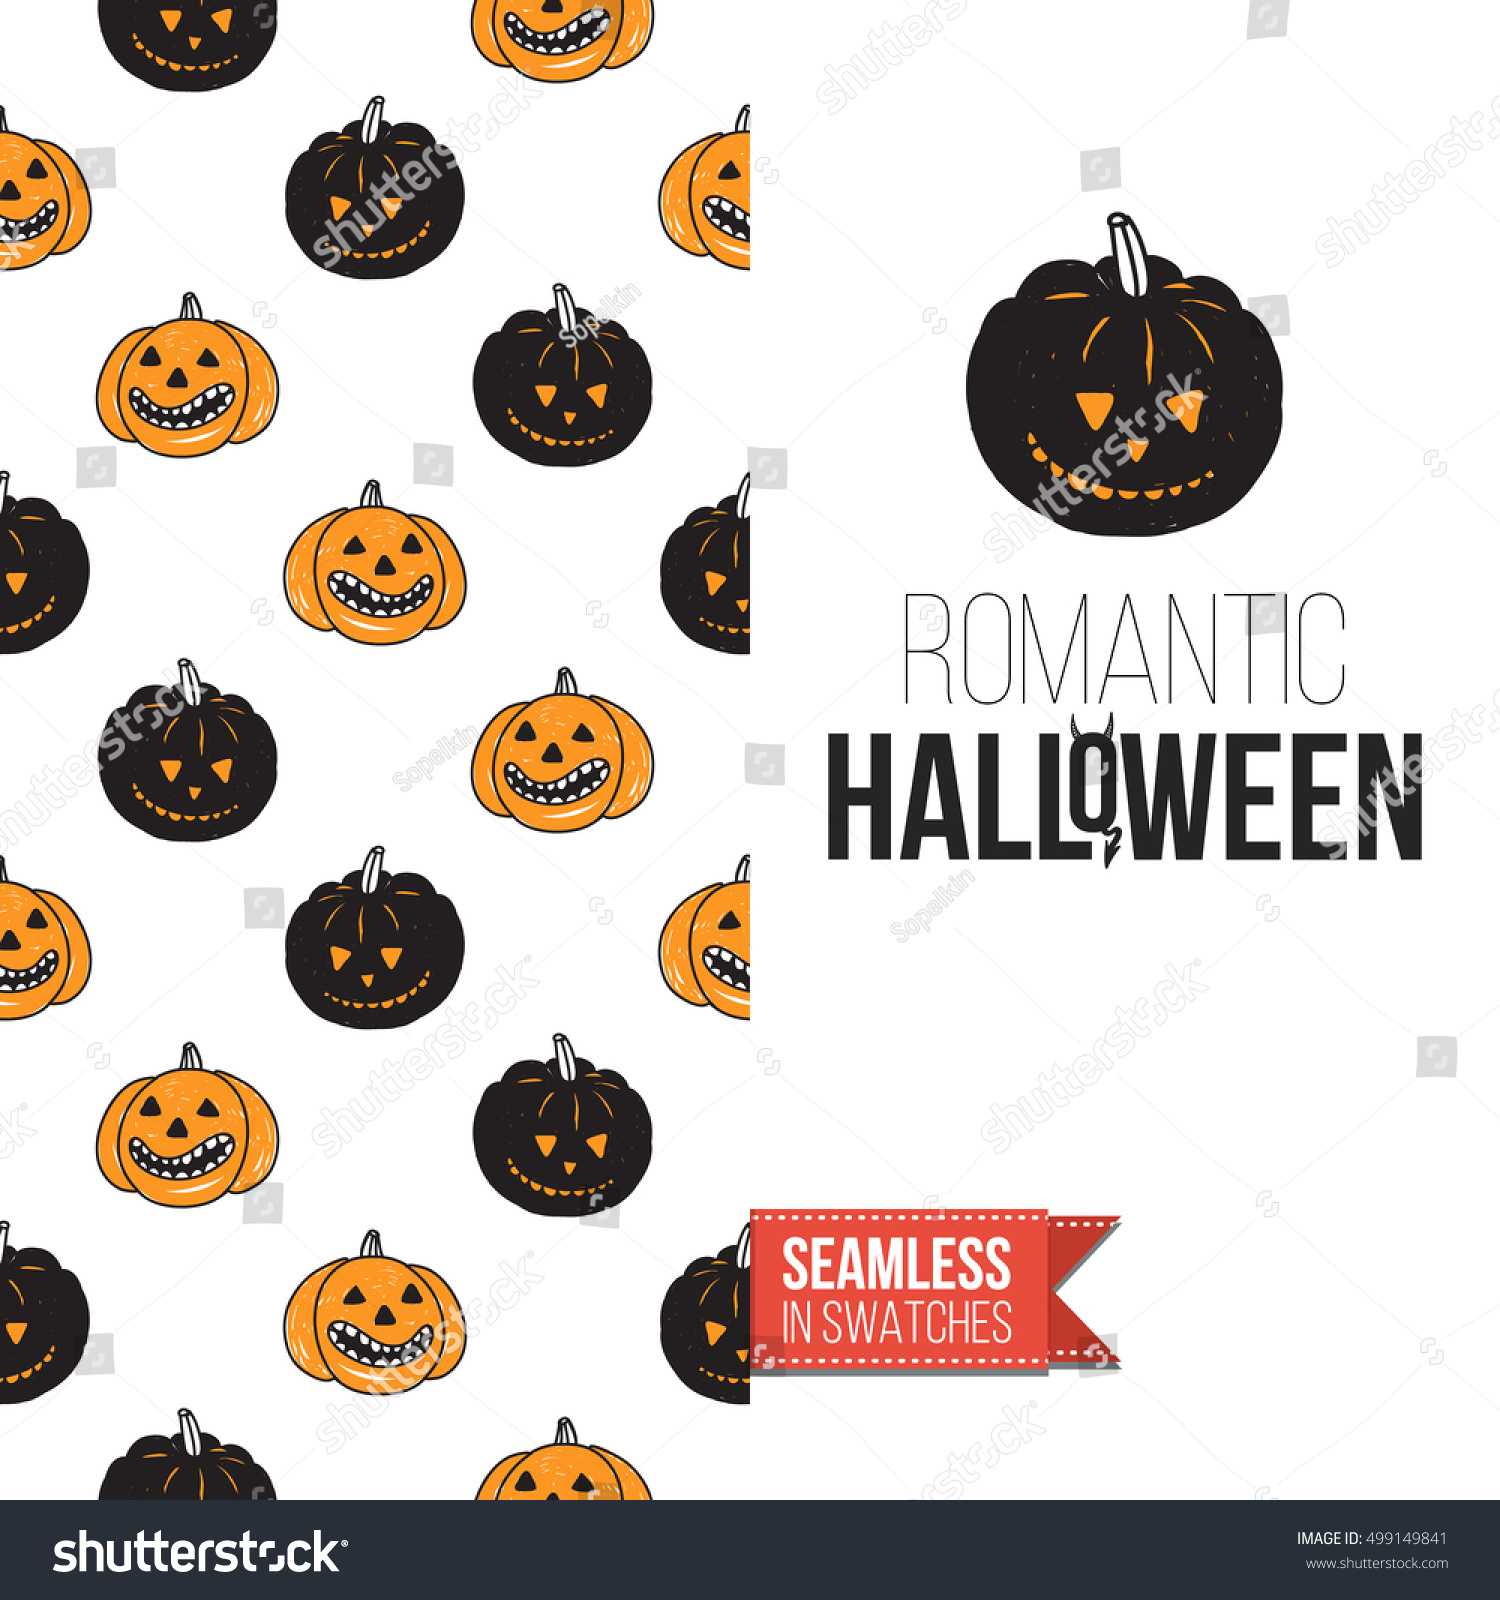 Minimalistic Style Greeting Card For Halloween Inspired By Spooky